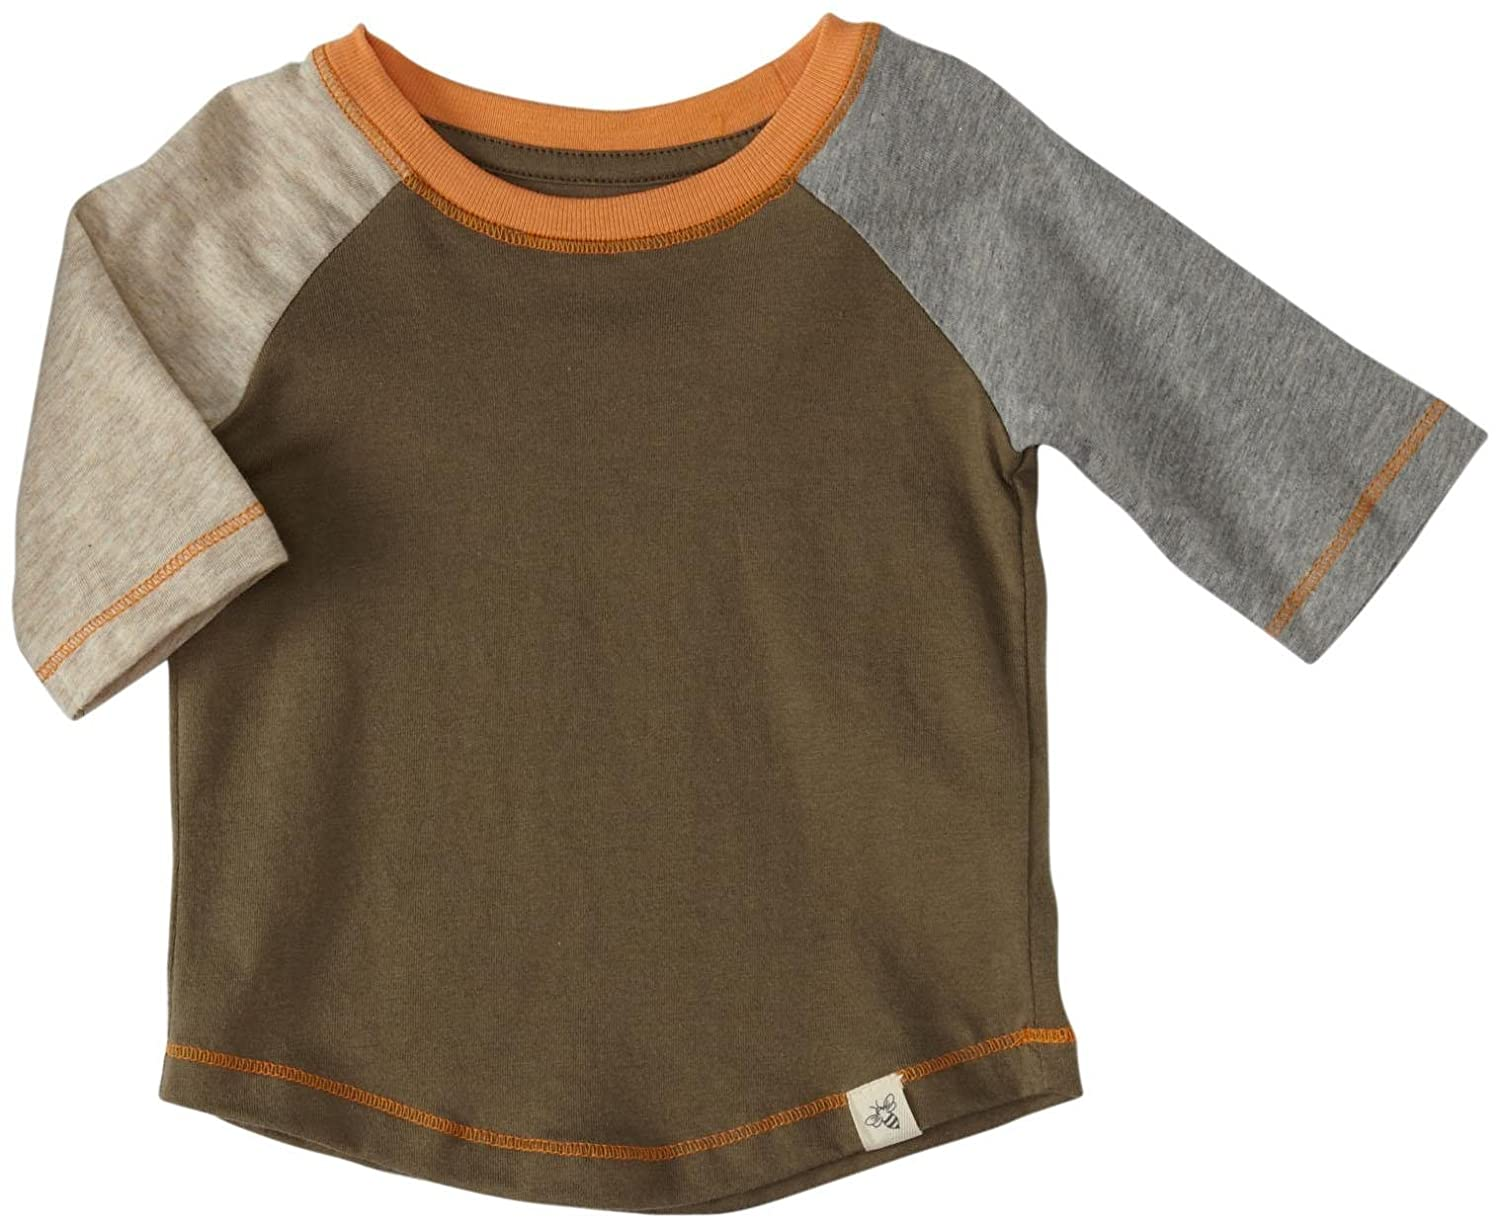 Olive Sprig 3-6 Months 100/% Organic Cotton Burts Bees Baby Baby Boys Style Name: T Short Sleeve Tee Under Shirt